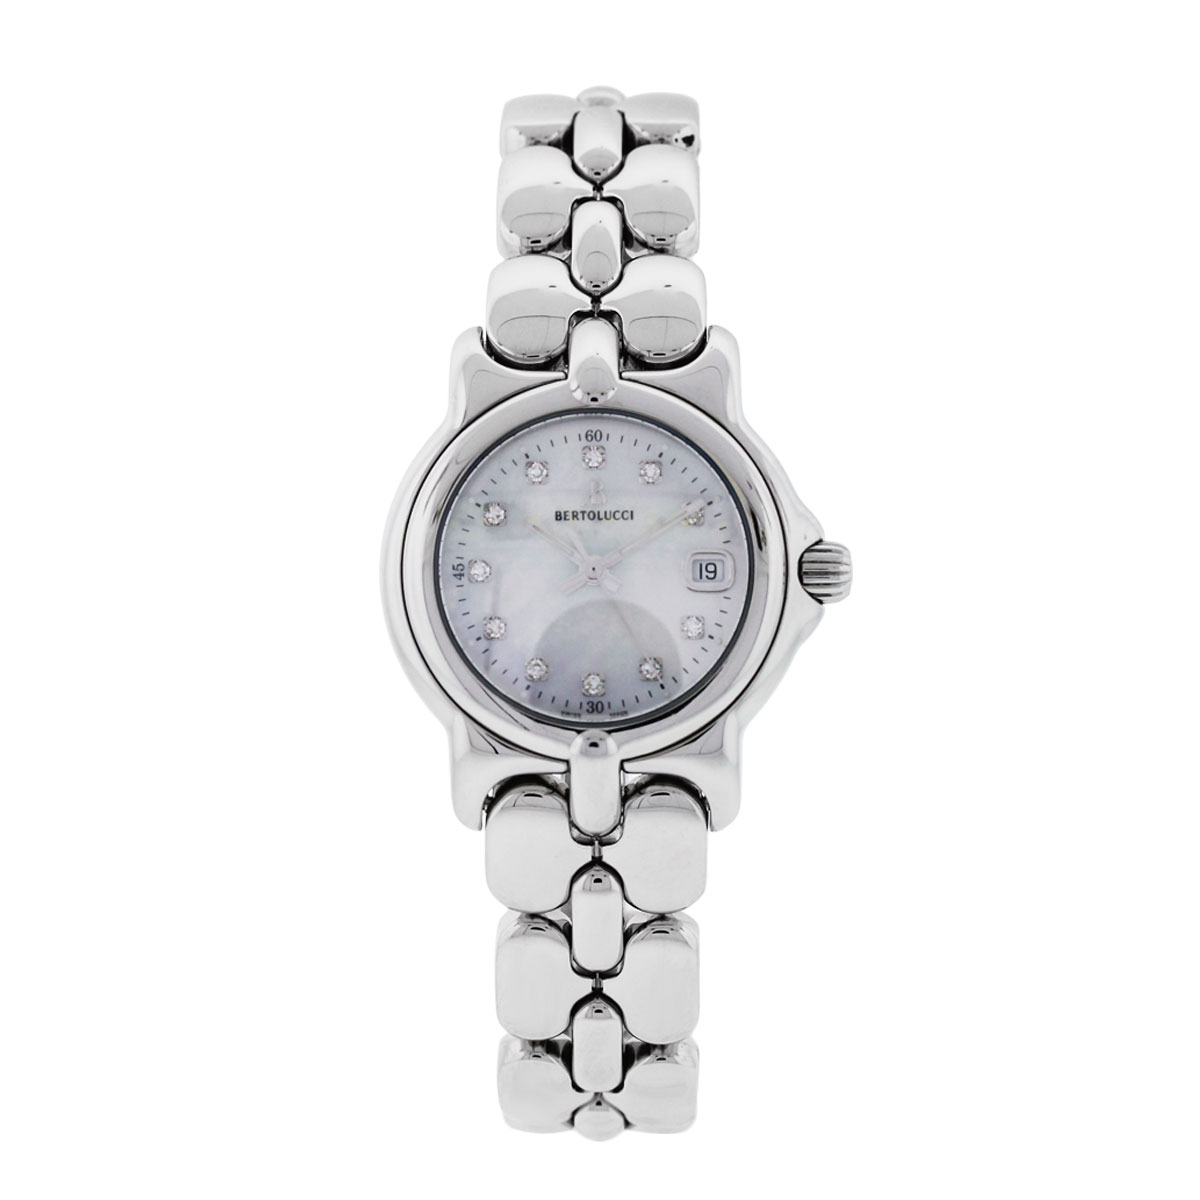 Bertolucci Vir Mother of Pearl Diamond Dial Watch